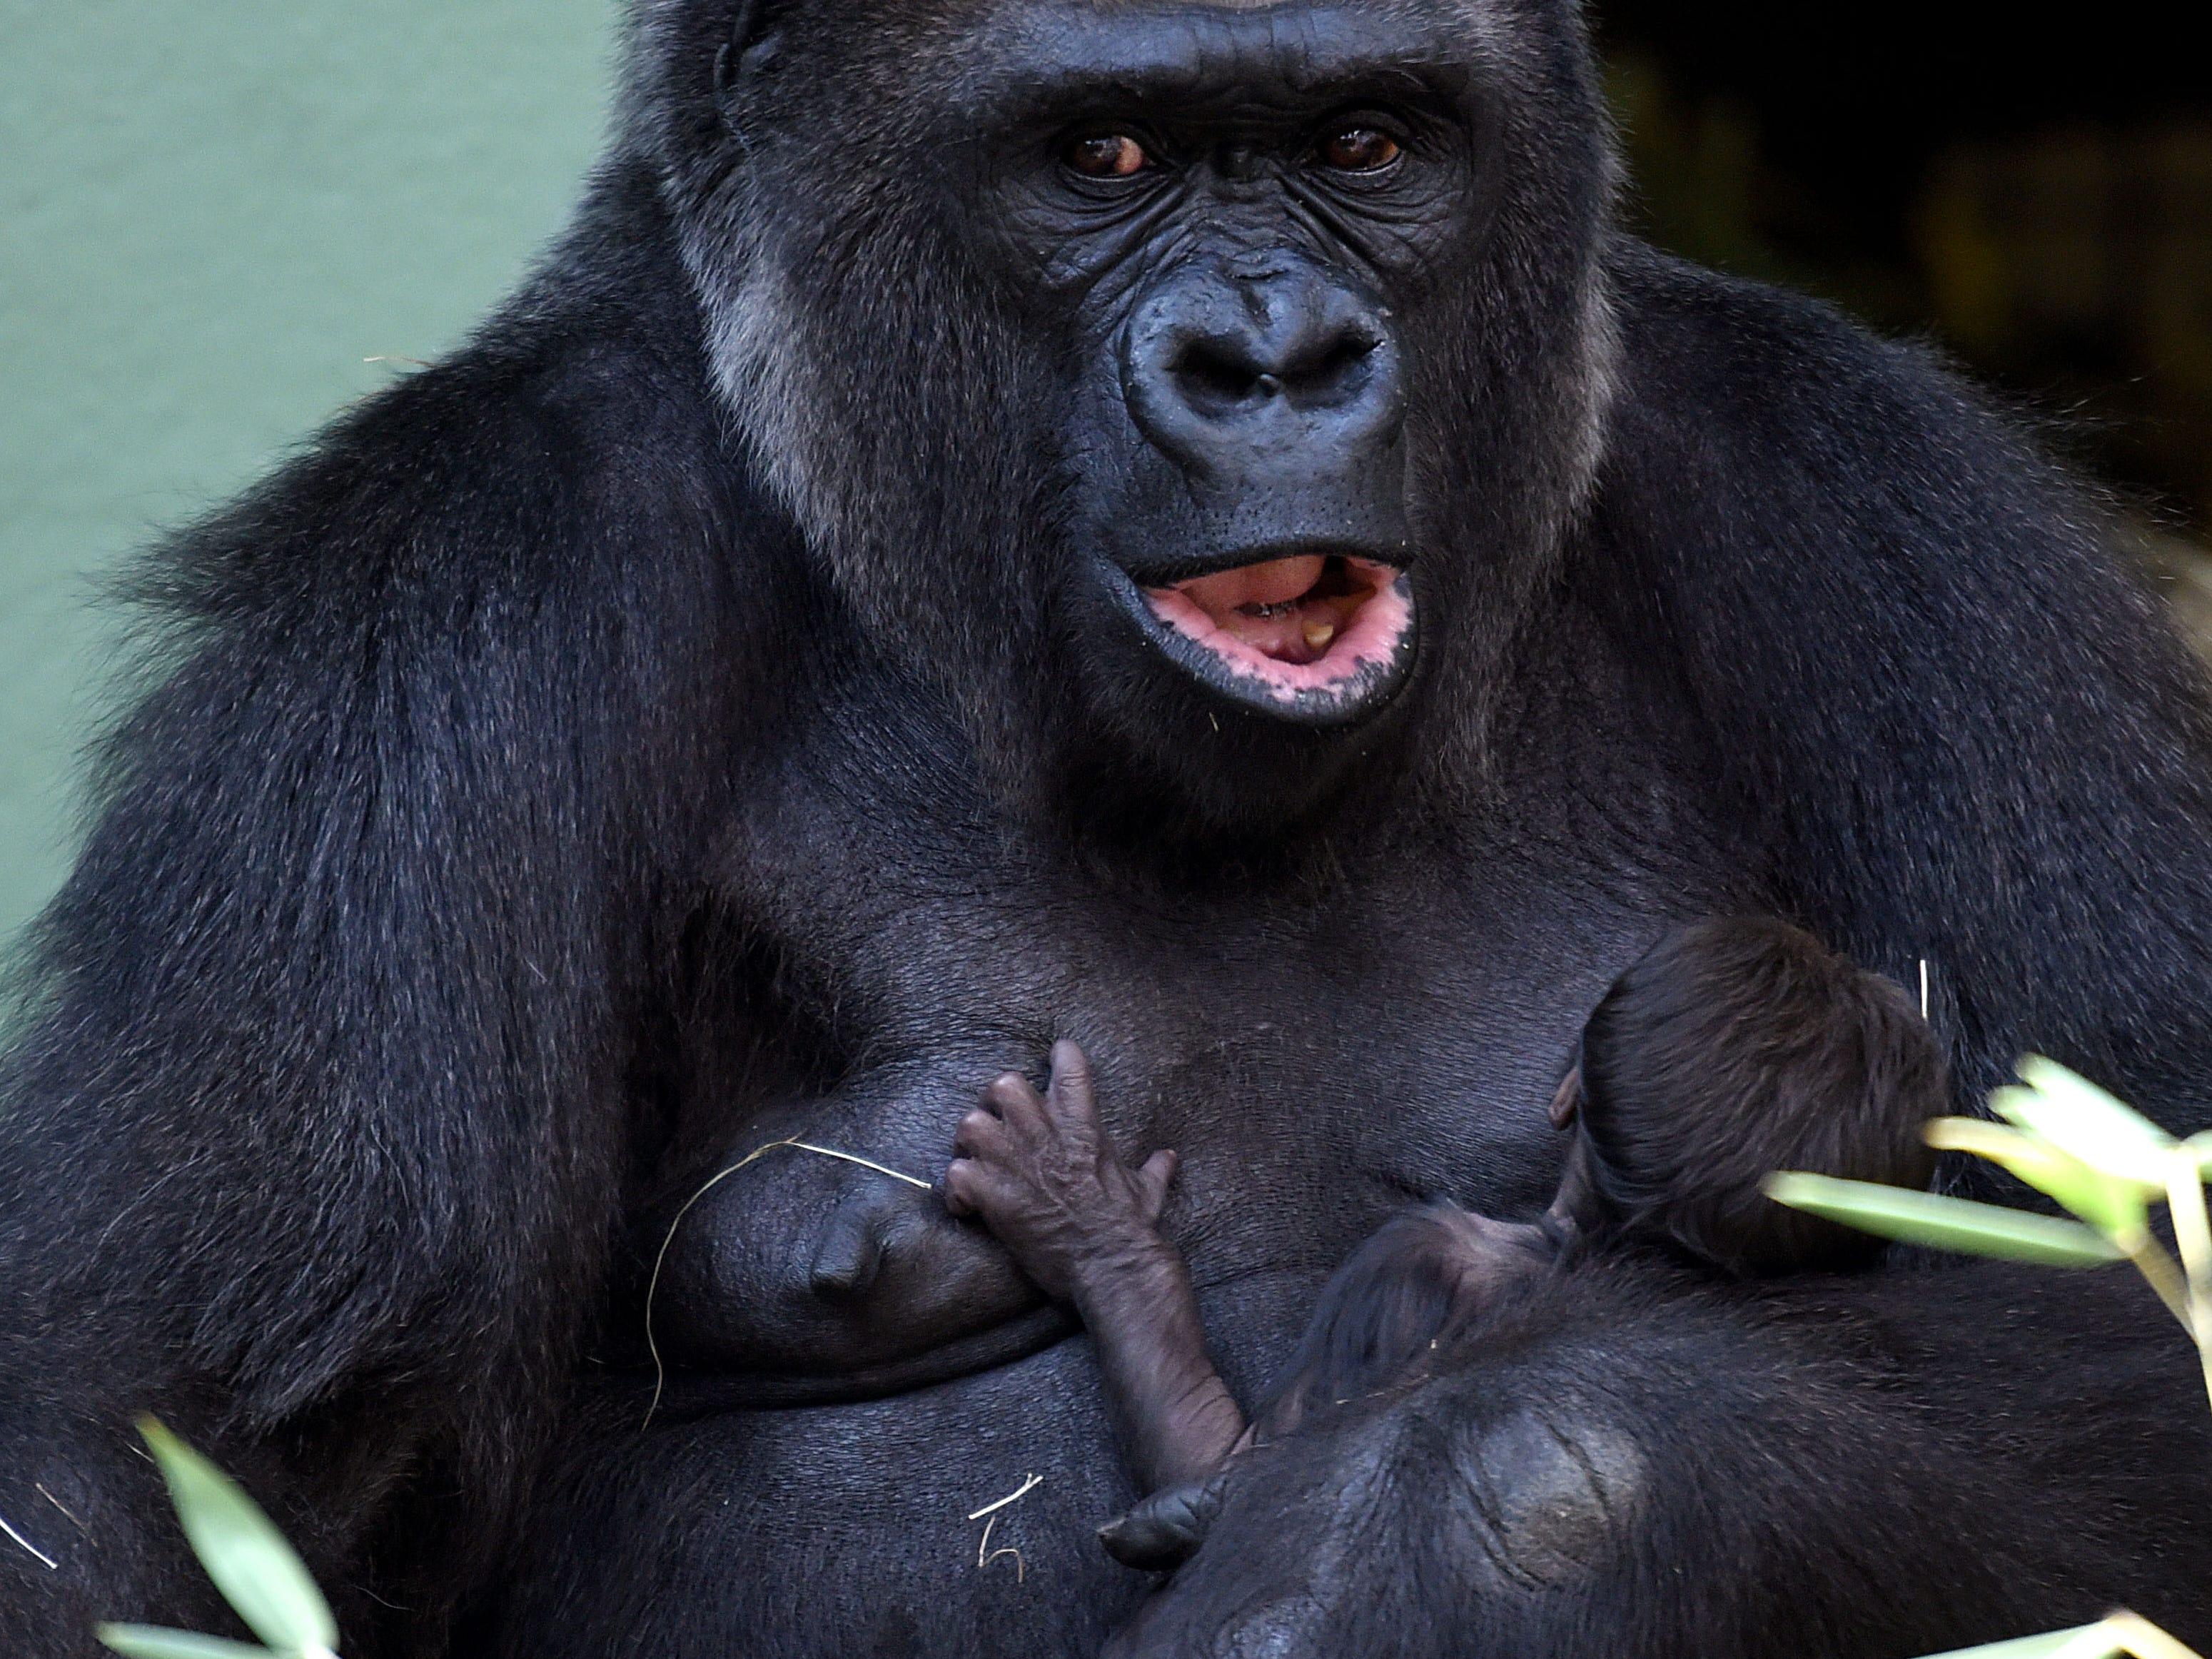 Kowali holds her yet unnamed baby gorilla Tuesday, September 13, 2016 at Zoo Knoxville where it was born on September 10, 2016. Bantu is the father of the baby gorilla.